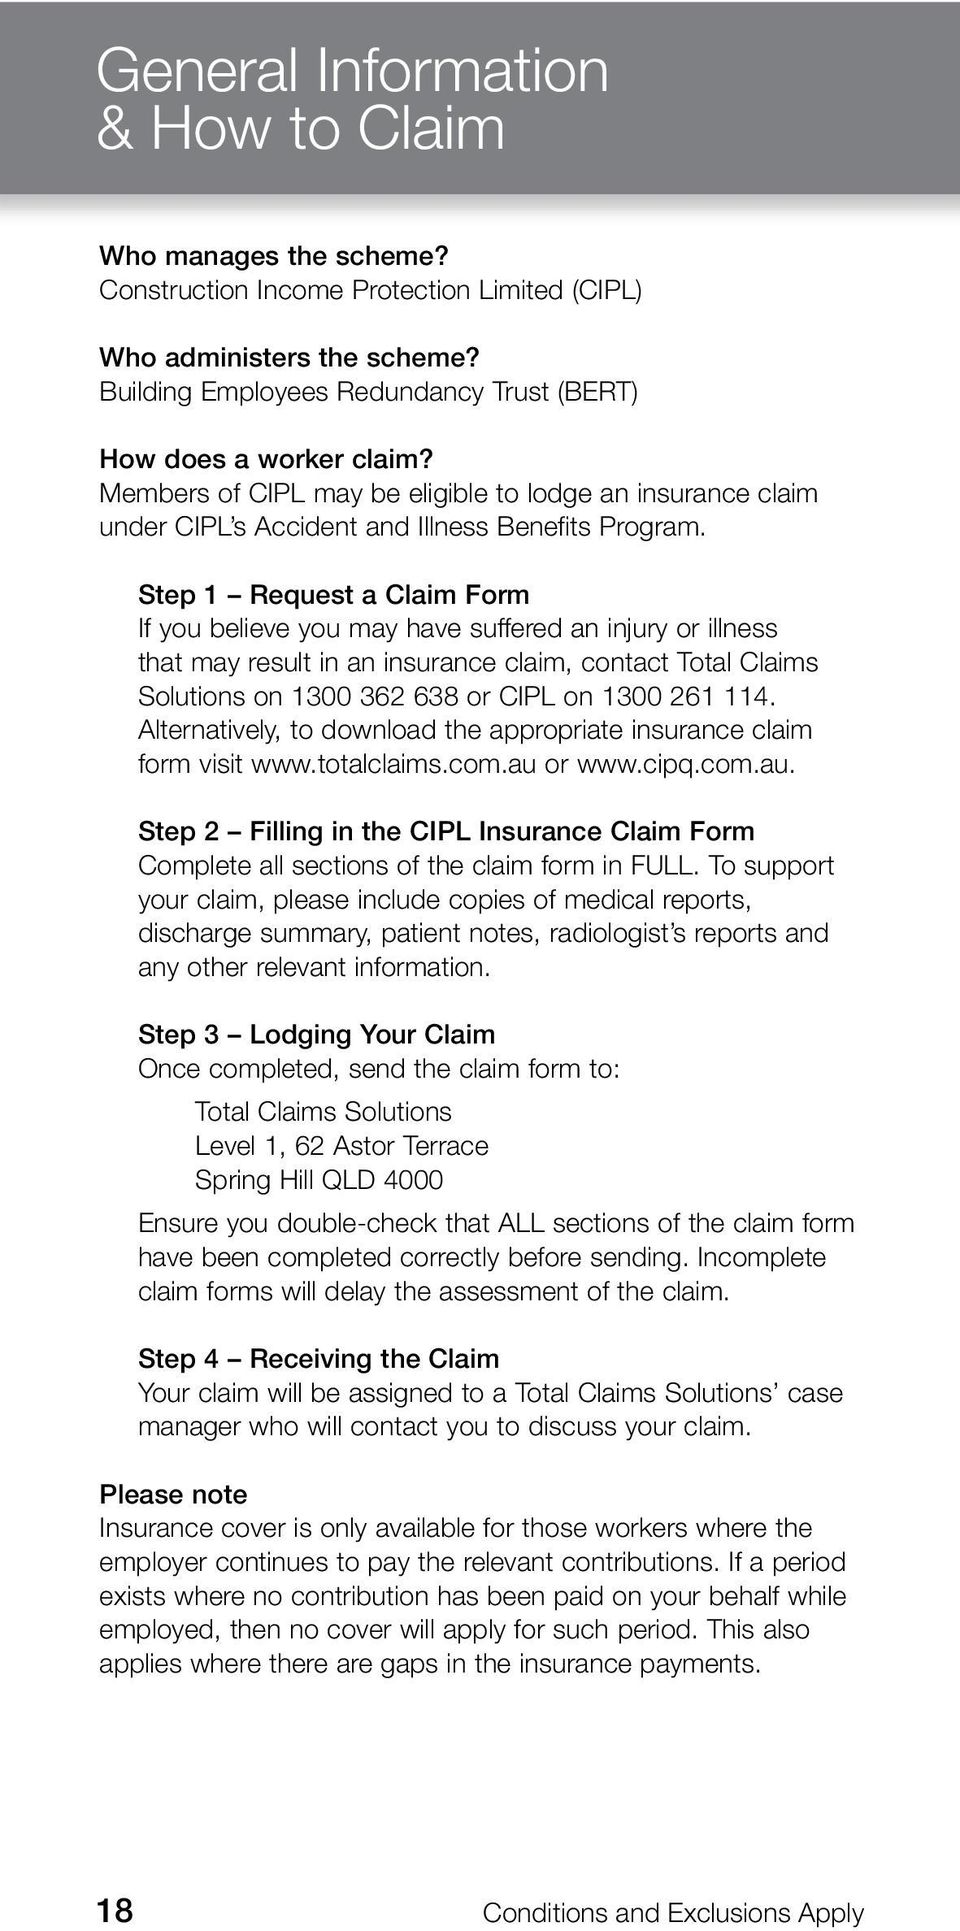 Step 1 Request a Claim Form If you believe you may have suffered an injury or illness that may result in an insurance claim, contact Total Claims Solutions on 1300 362 638 or CIPL on 1300 261 114.